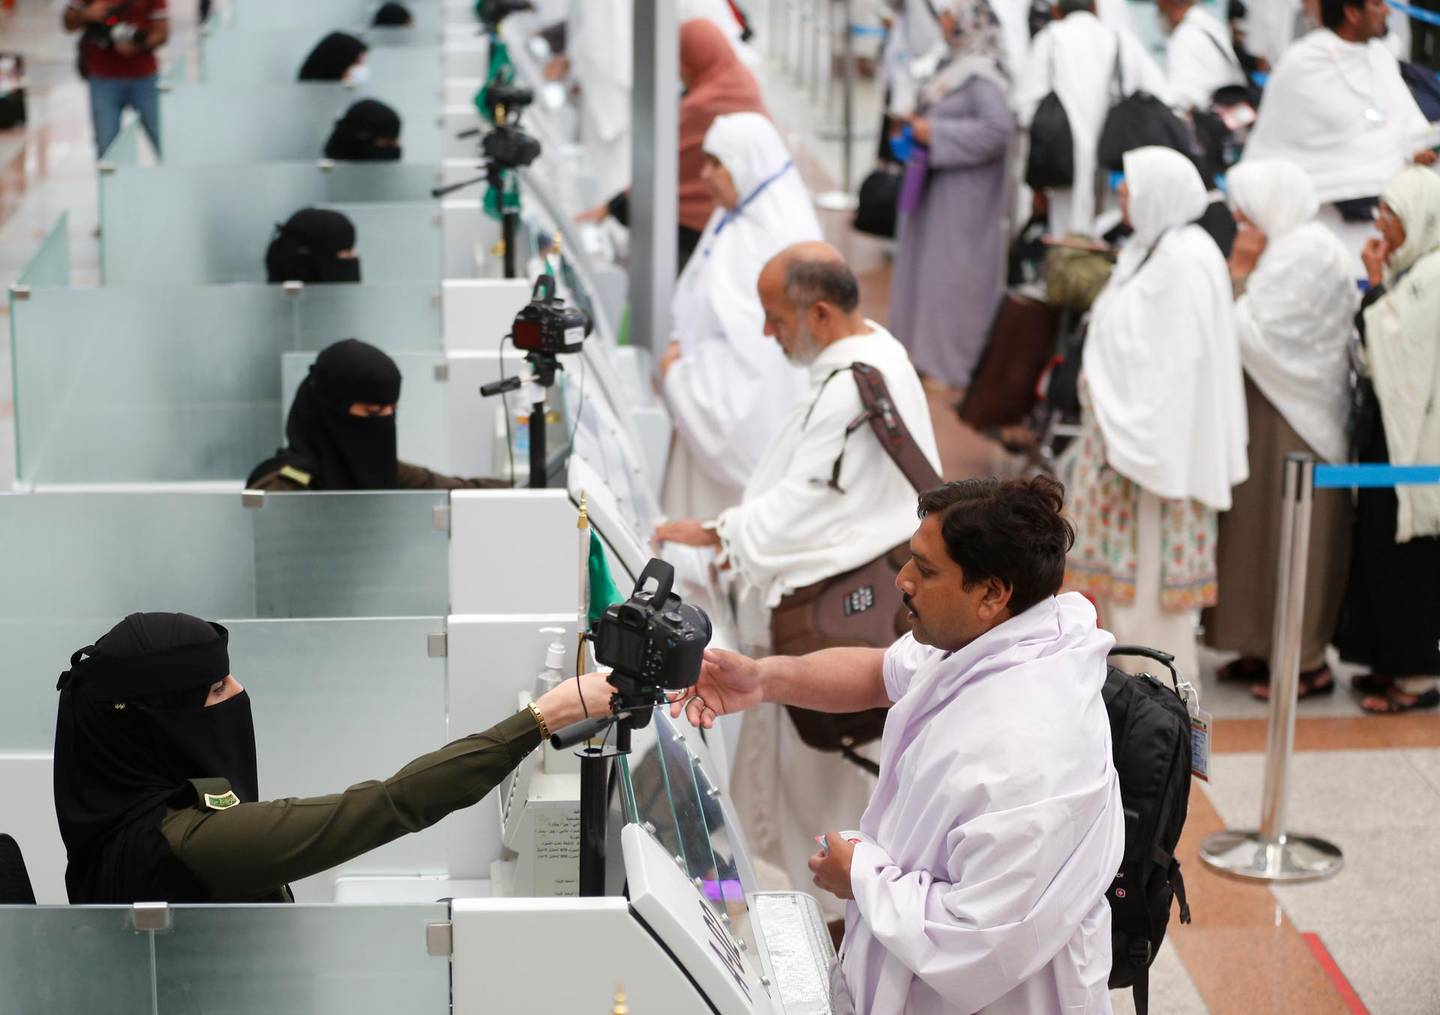 Saudi female officers from  the national security forces, register and check pilgrims at the Hajj Terminal at Jiddah airport, Saudi Arabia, Saturday, Aug. 3, 2019.  The annual Islamic pilgrimage draws millions of visitors each year, making it the largest yearly gathering of people in the world.  (AP Photo/Amr Nabil)